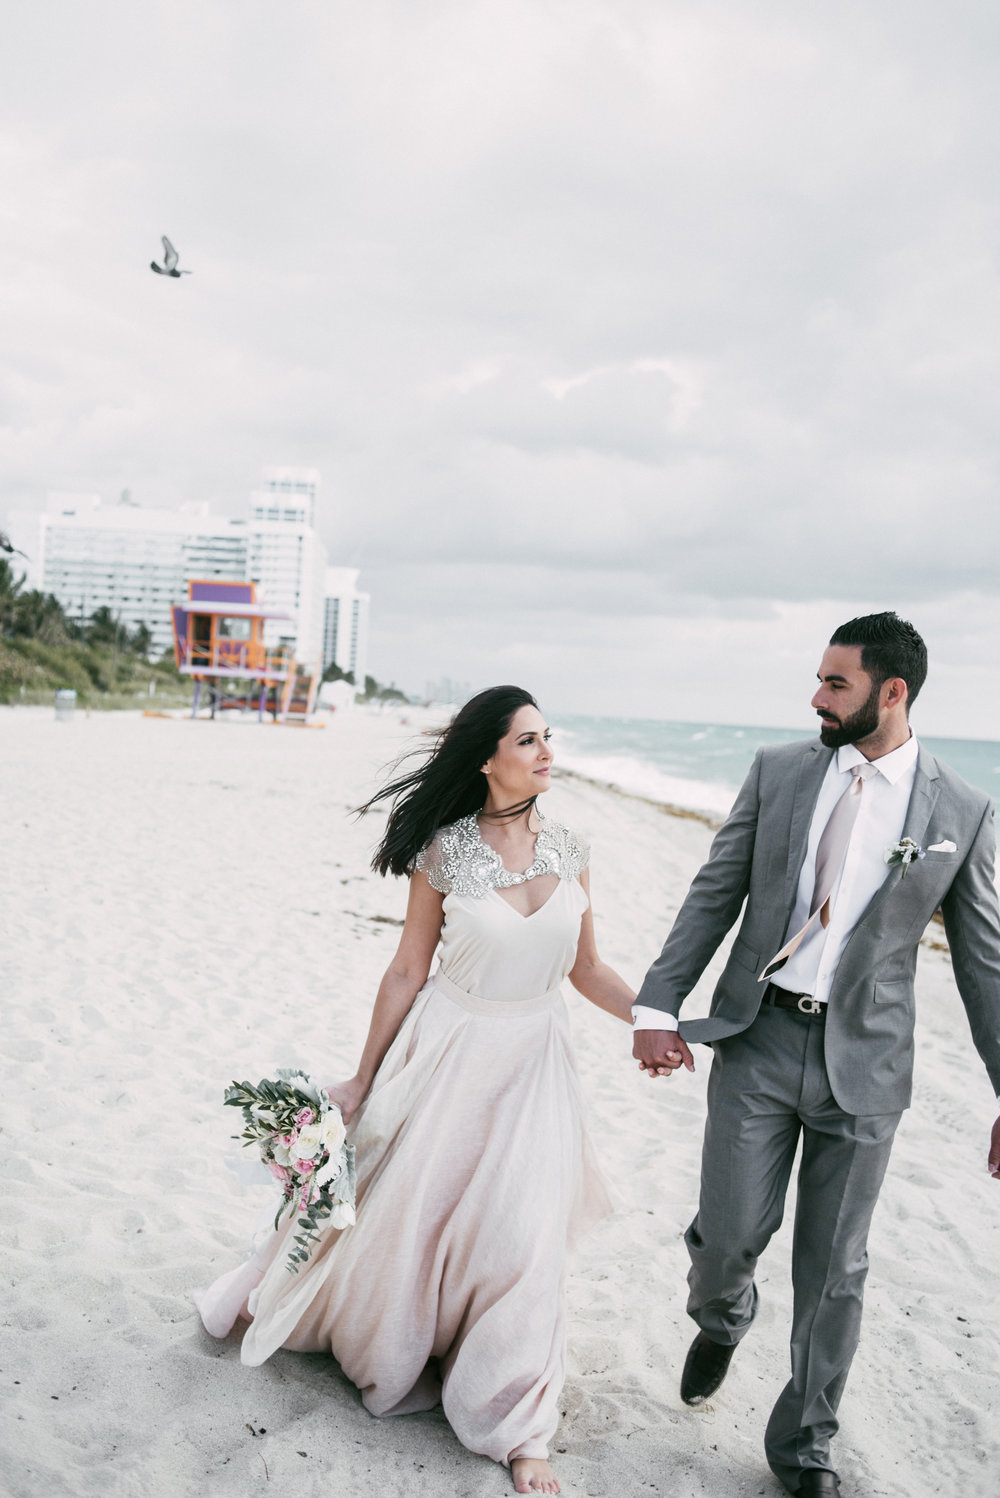 wedding_photographer_miami_sara-lobla_0077.jpg